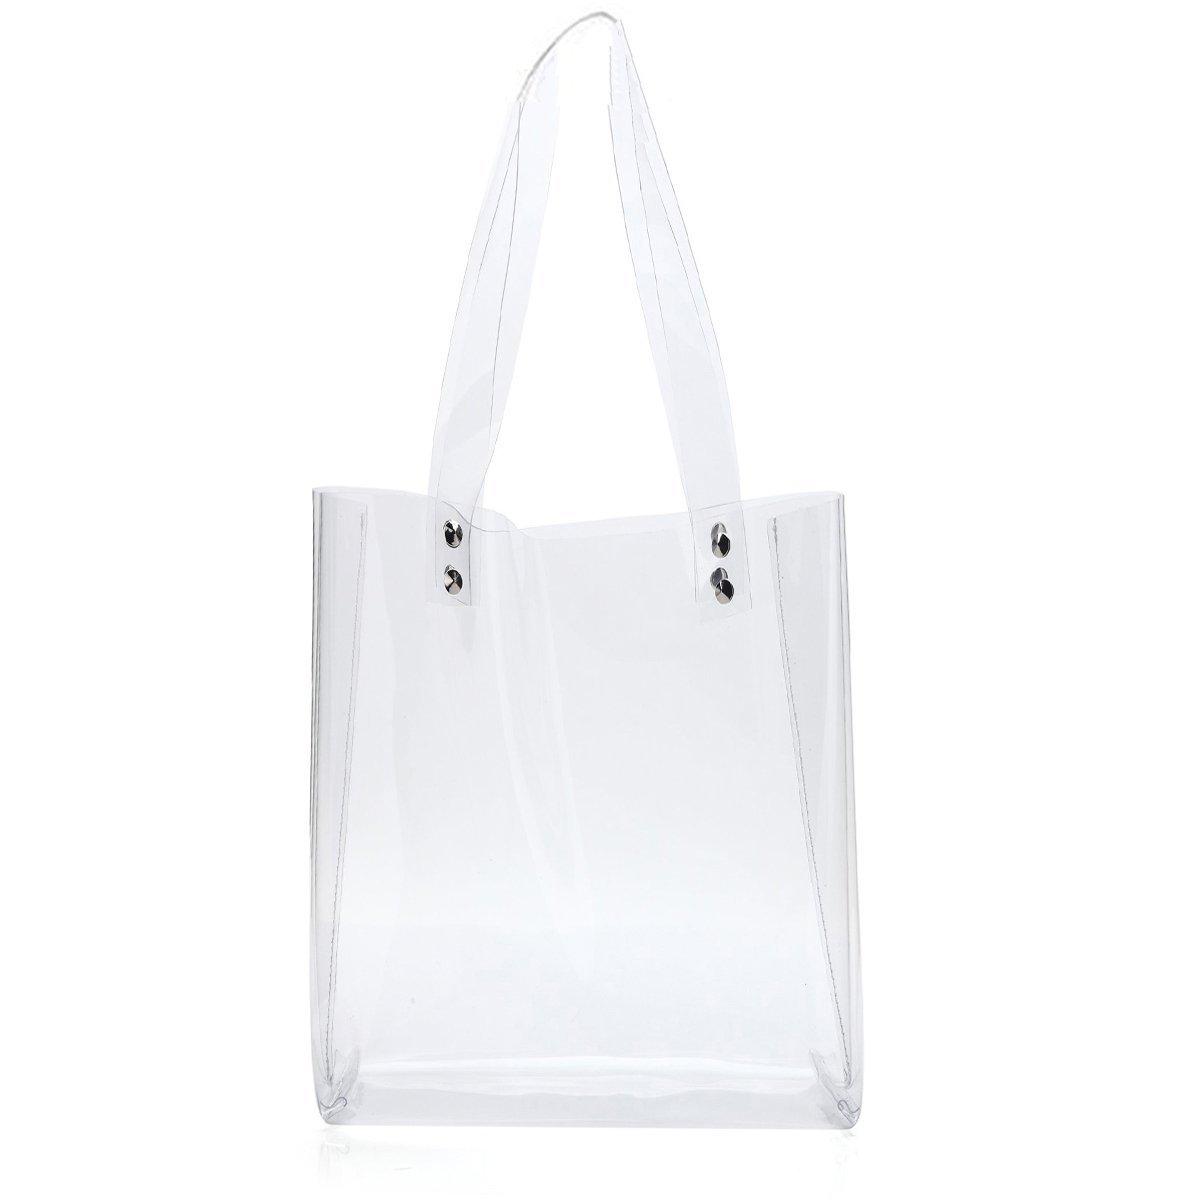 Amazon.com: Women Clear Tote Bags for Work Stadium Approved ...